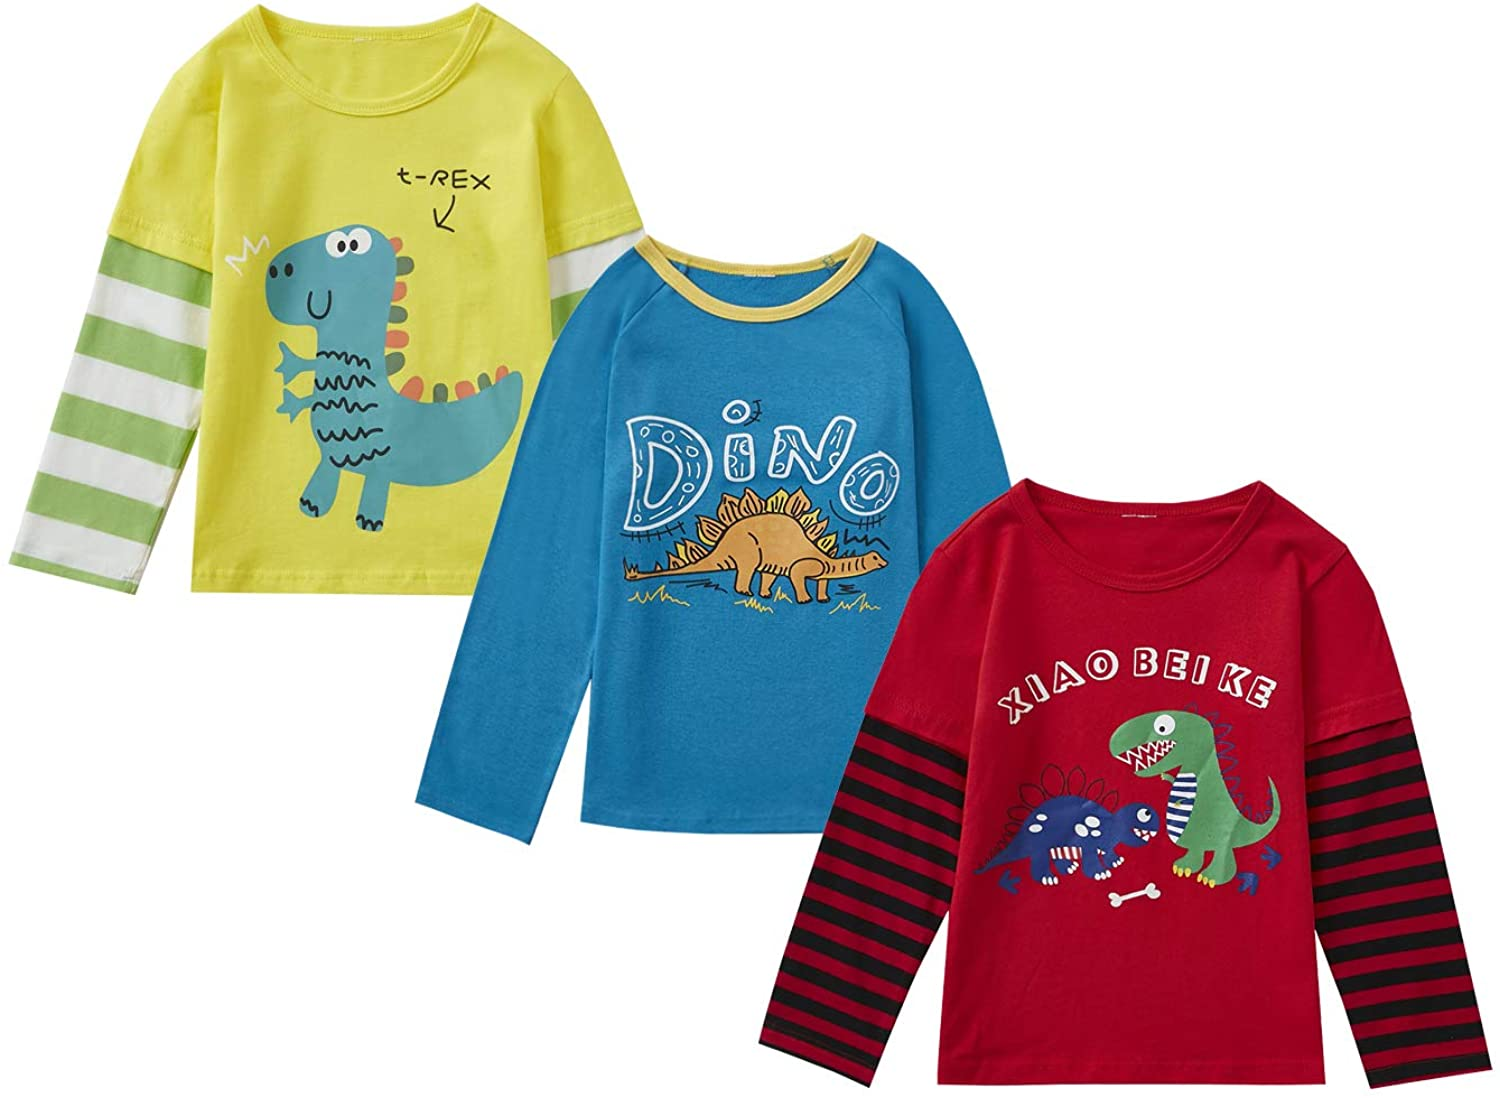 Boys Year-end annual account Shirt Tops OFFicial mail order 2 Pieces of 3 Round Children's W red Neck Shirts